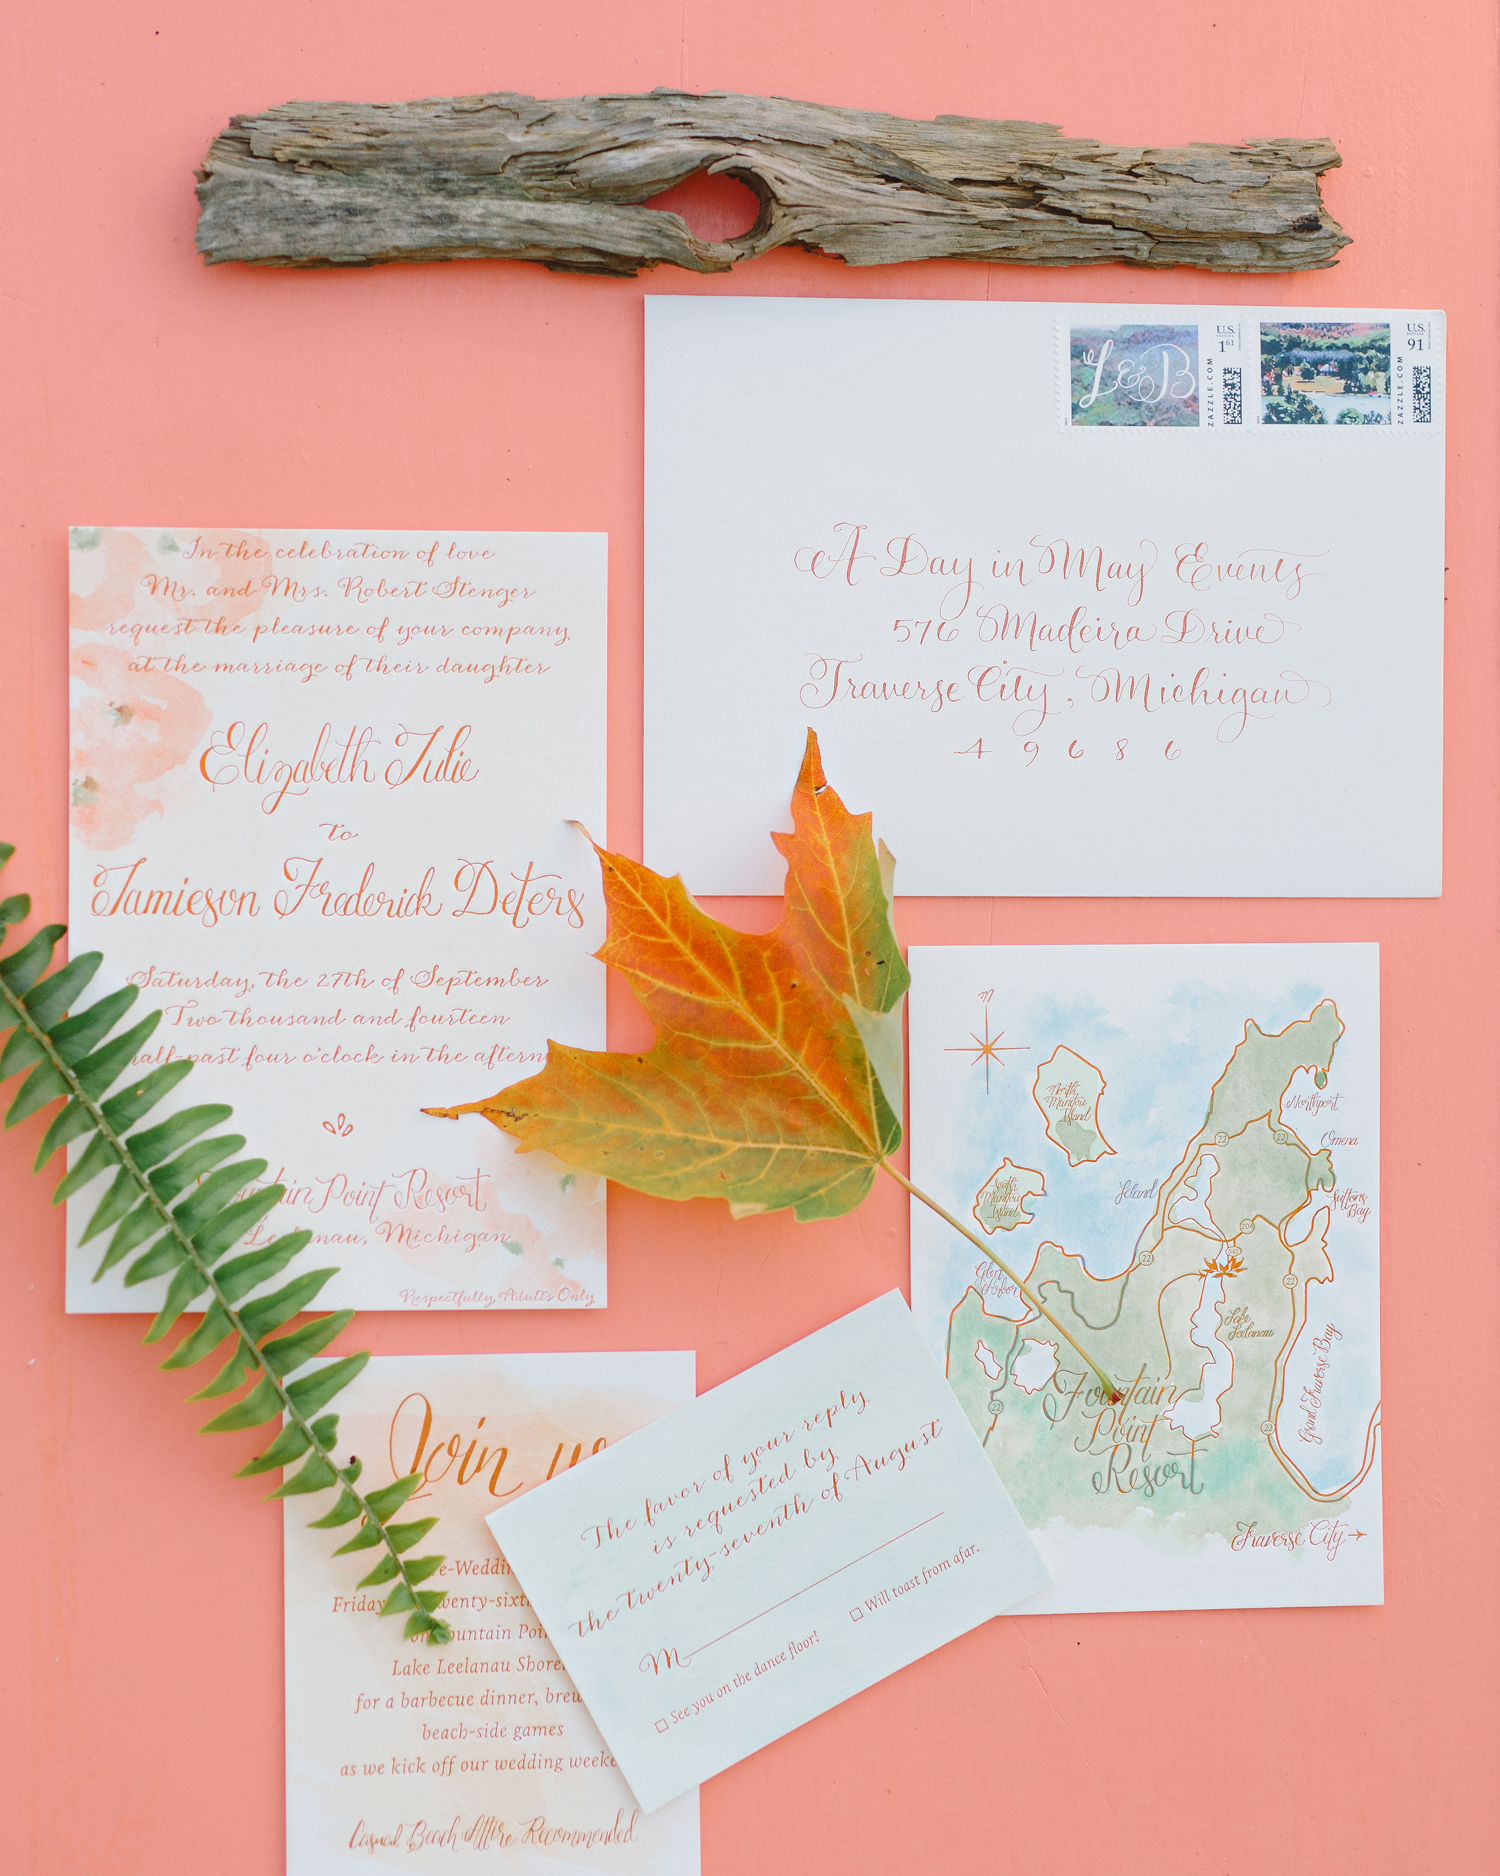 lizzy-bucky-wedding-stationery-83-s111857-0315.jpg